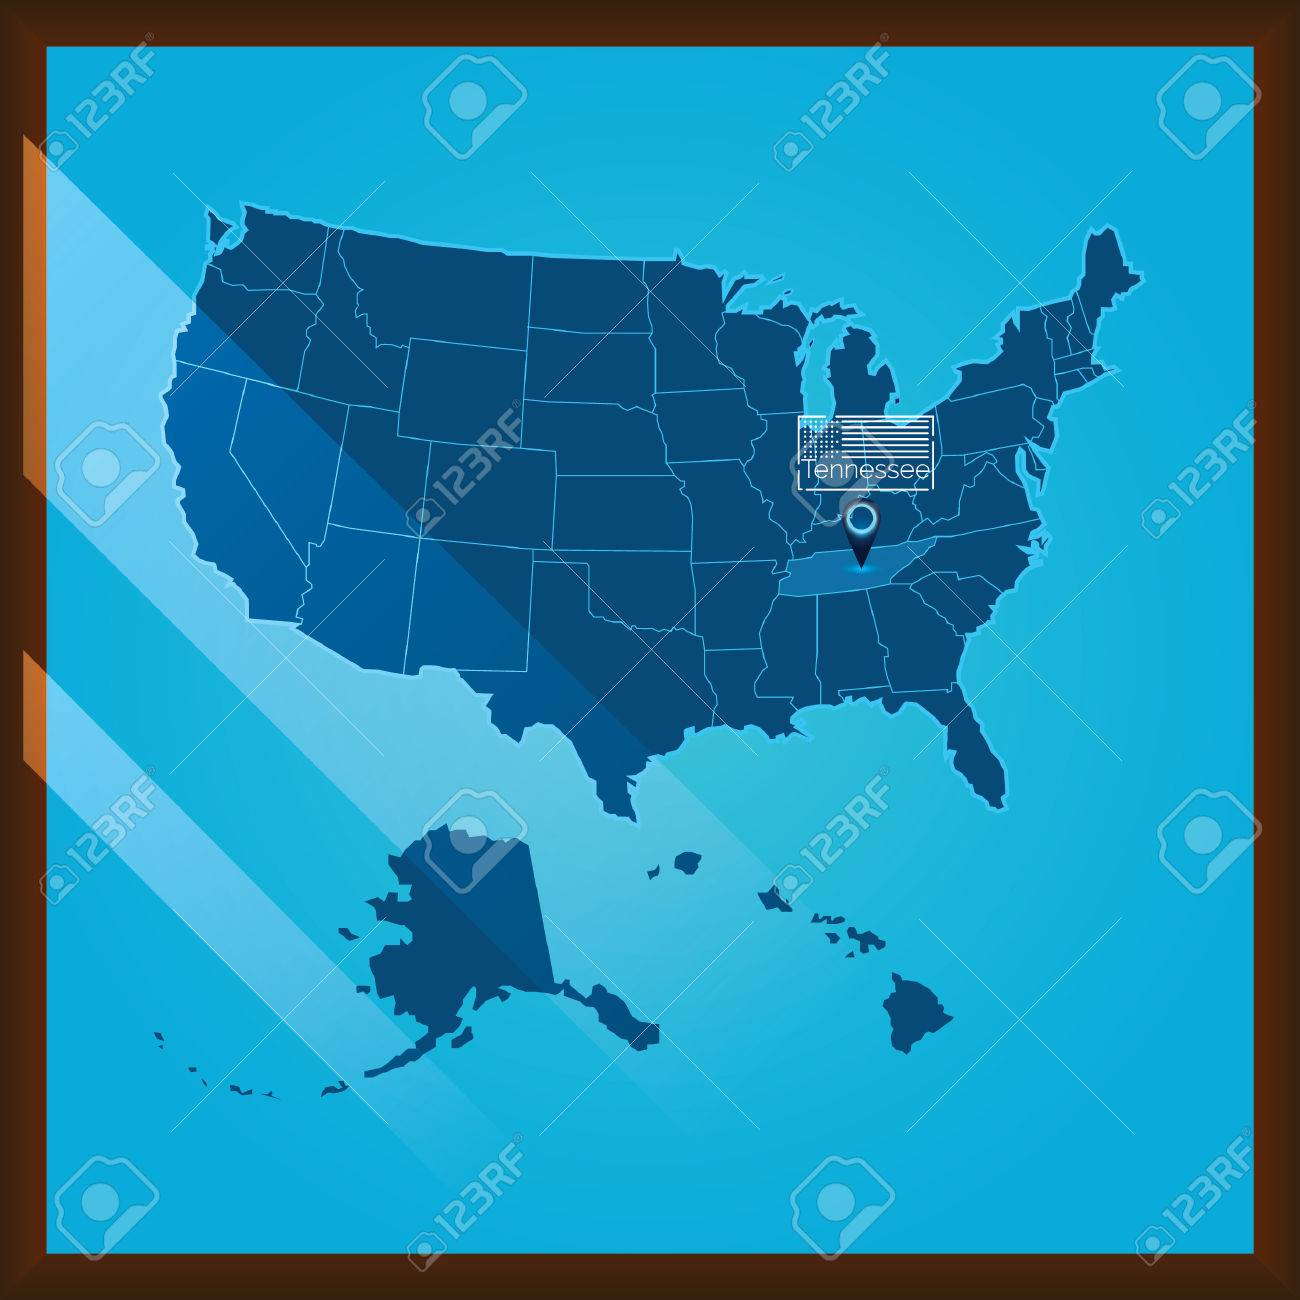 Navigation Pointer Indicating Tennessee State On Us Map Royalty Free